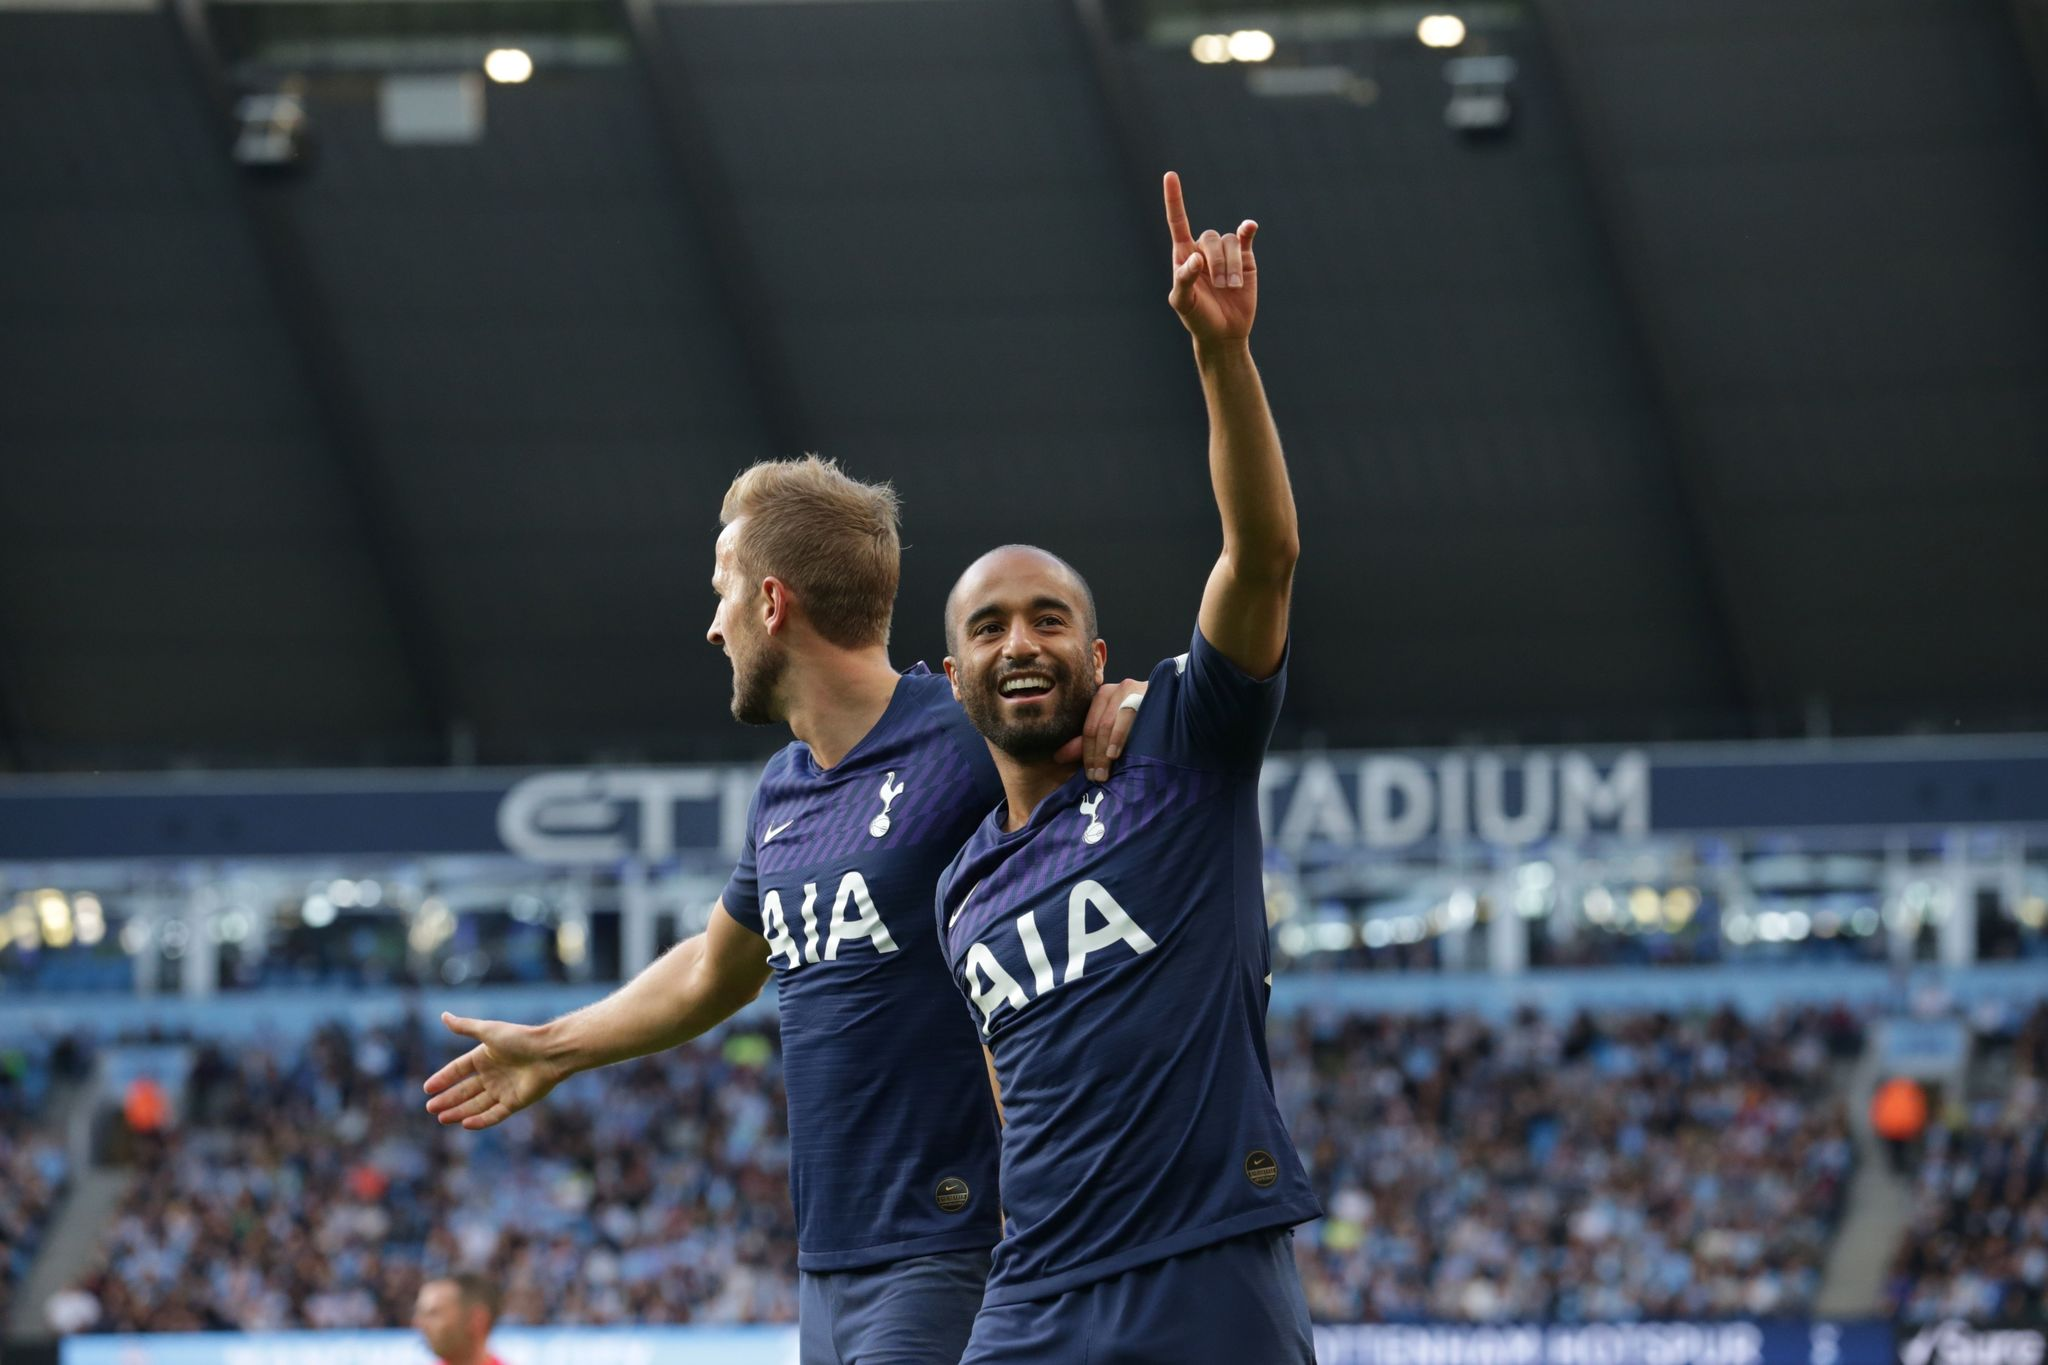 Tottenham Hotspurs Brazilian midfielder <HIT>Lucas</HIT><HIT>Moura</HIT> (R) celebrates scoring his teams second goal during the English Premier League football match between Manchester City and Tottenham Hotspur at the Etihad Stadium in Manchester, north west England, on August 17, 2019. (Photo by Lindsey Parnaby / AFP) / RESTRICTED TO EDITORIAL USE. No use with unauthorized audio, video, data, fixture lists, club/league logos or live services. Online in-match use limited to 120 images. An additional 40 images may be used in extra time. No video emulation. Social media in-match use limited to 120 images. An additional 40 images may be used in extra time. No use in betting publications, games or single club/league/player publications. /